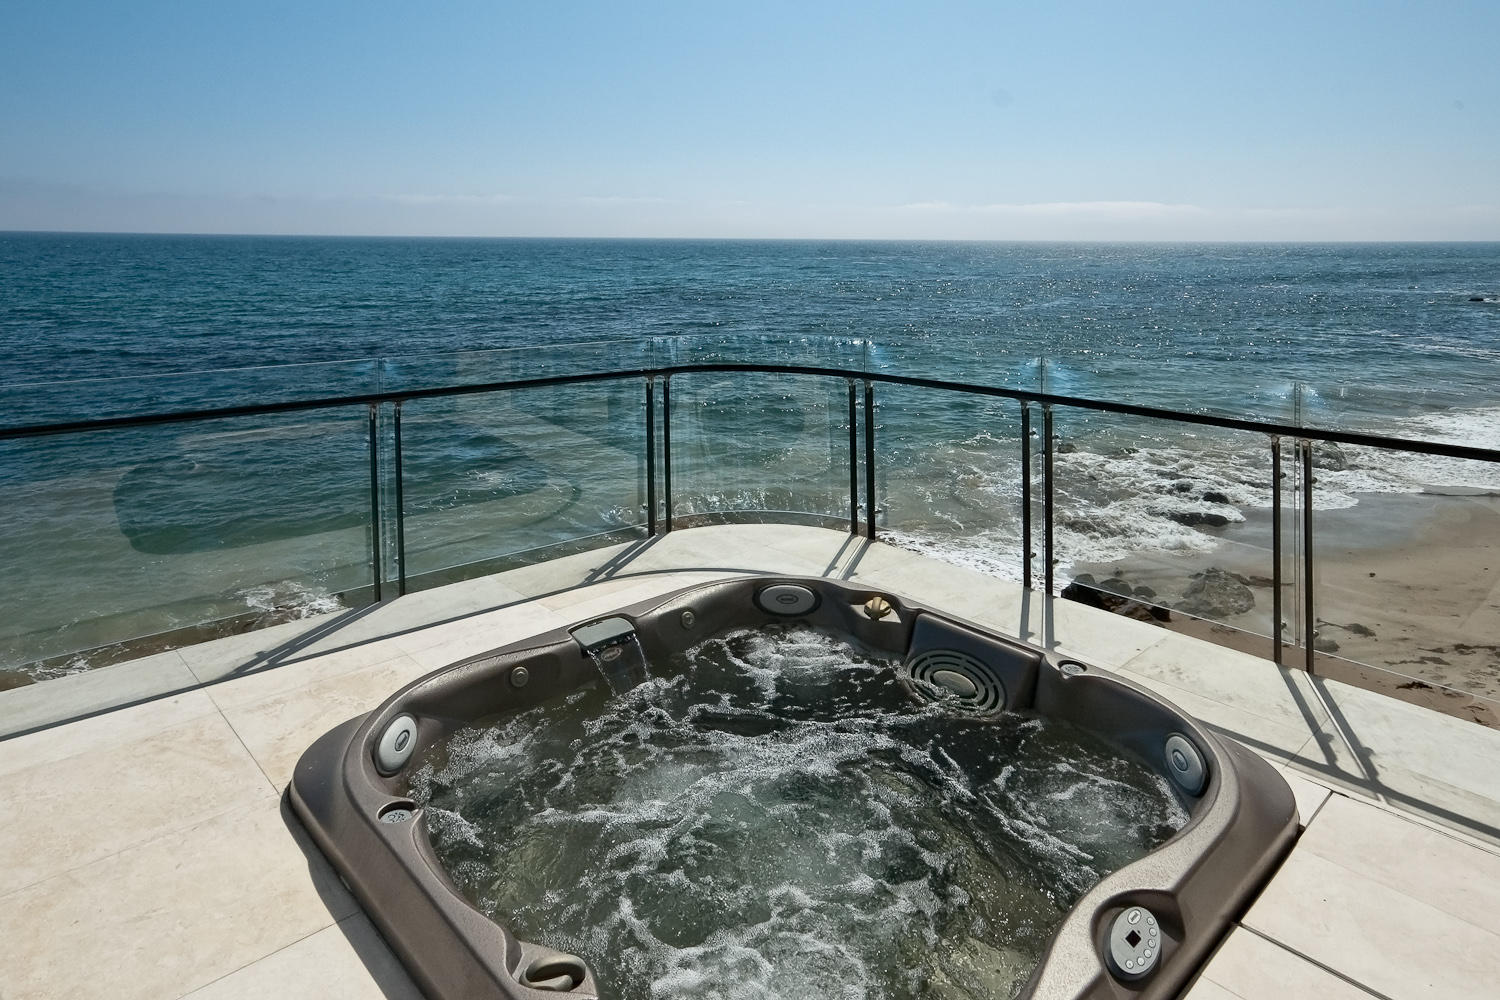 Pristine 3 bedroom beach house for rent in malibu california blog purentonline - Beachfront houses in california ...